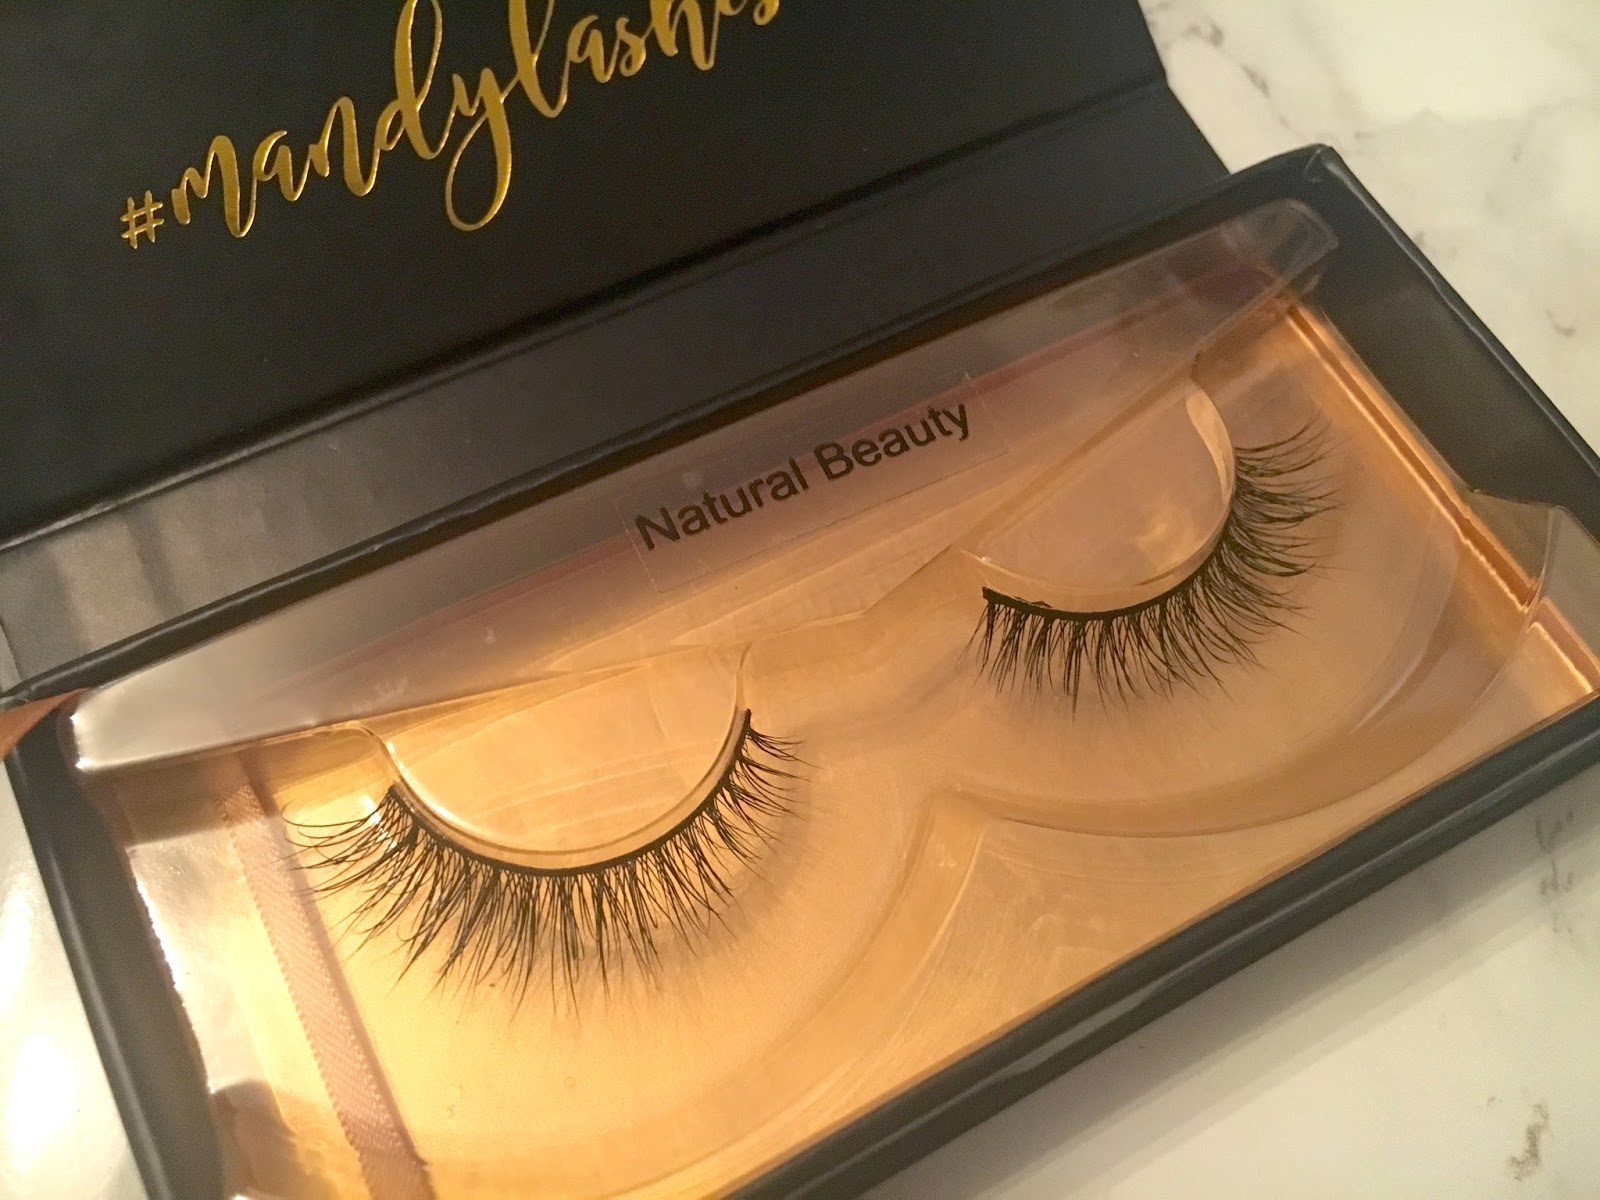 Mandy Lashes Bombshell Natural Beauty